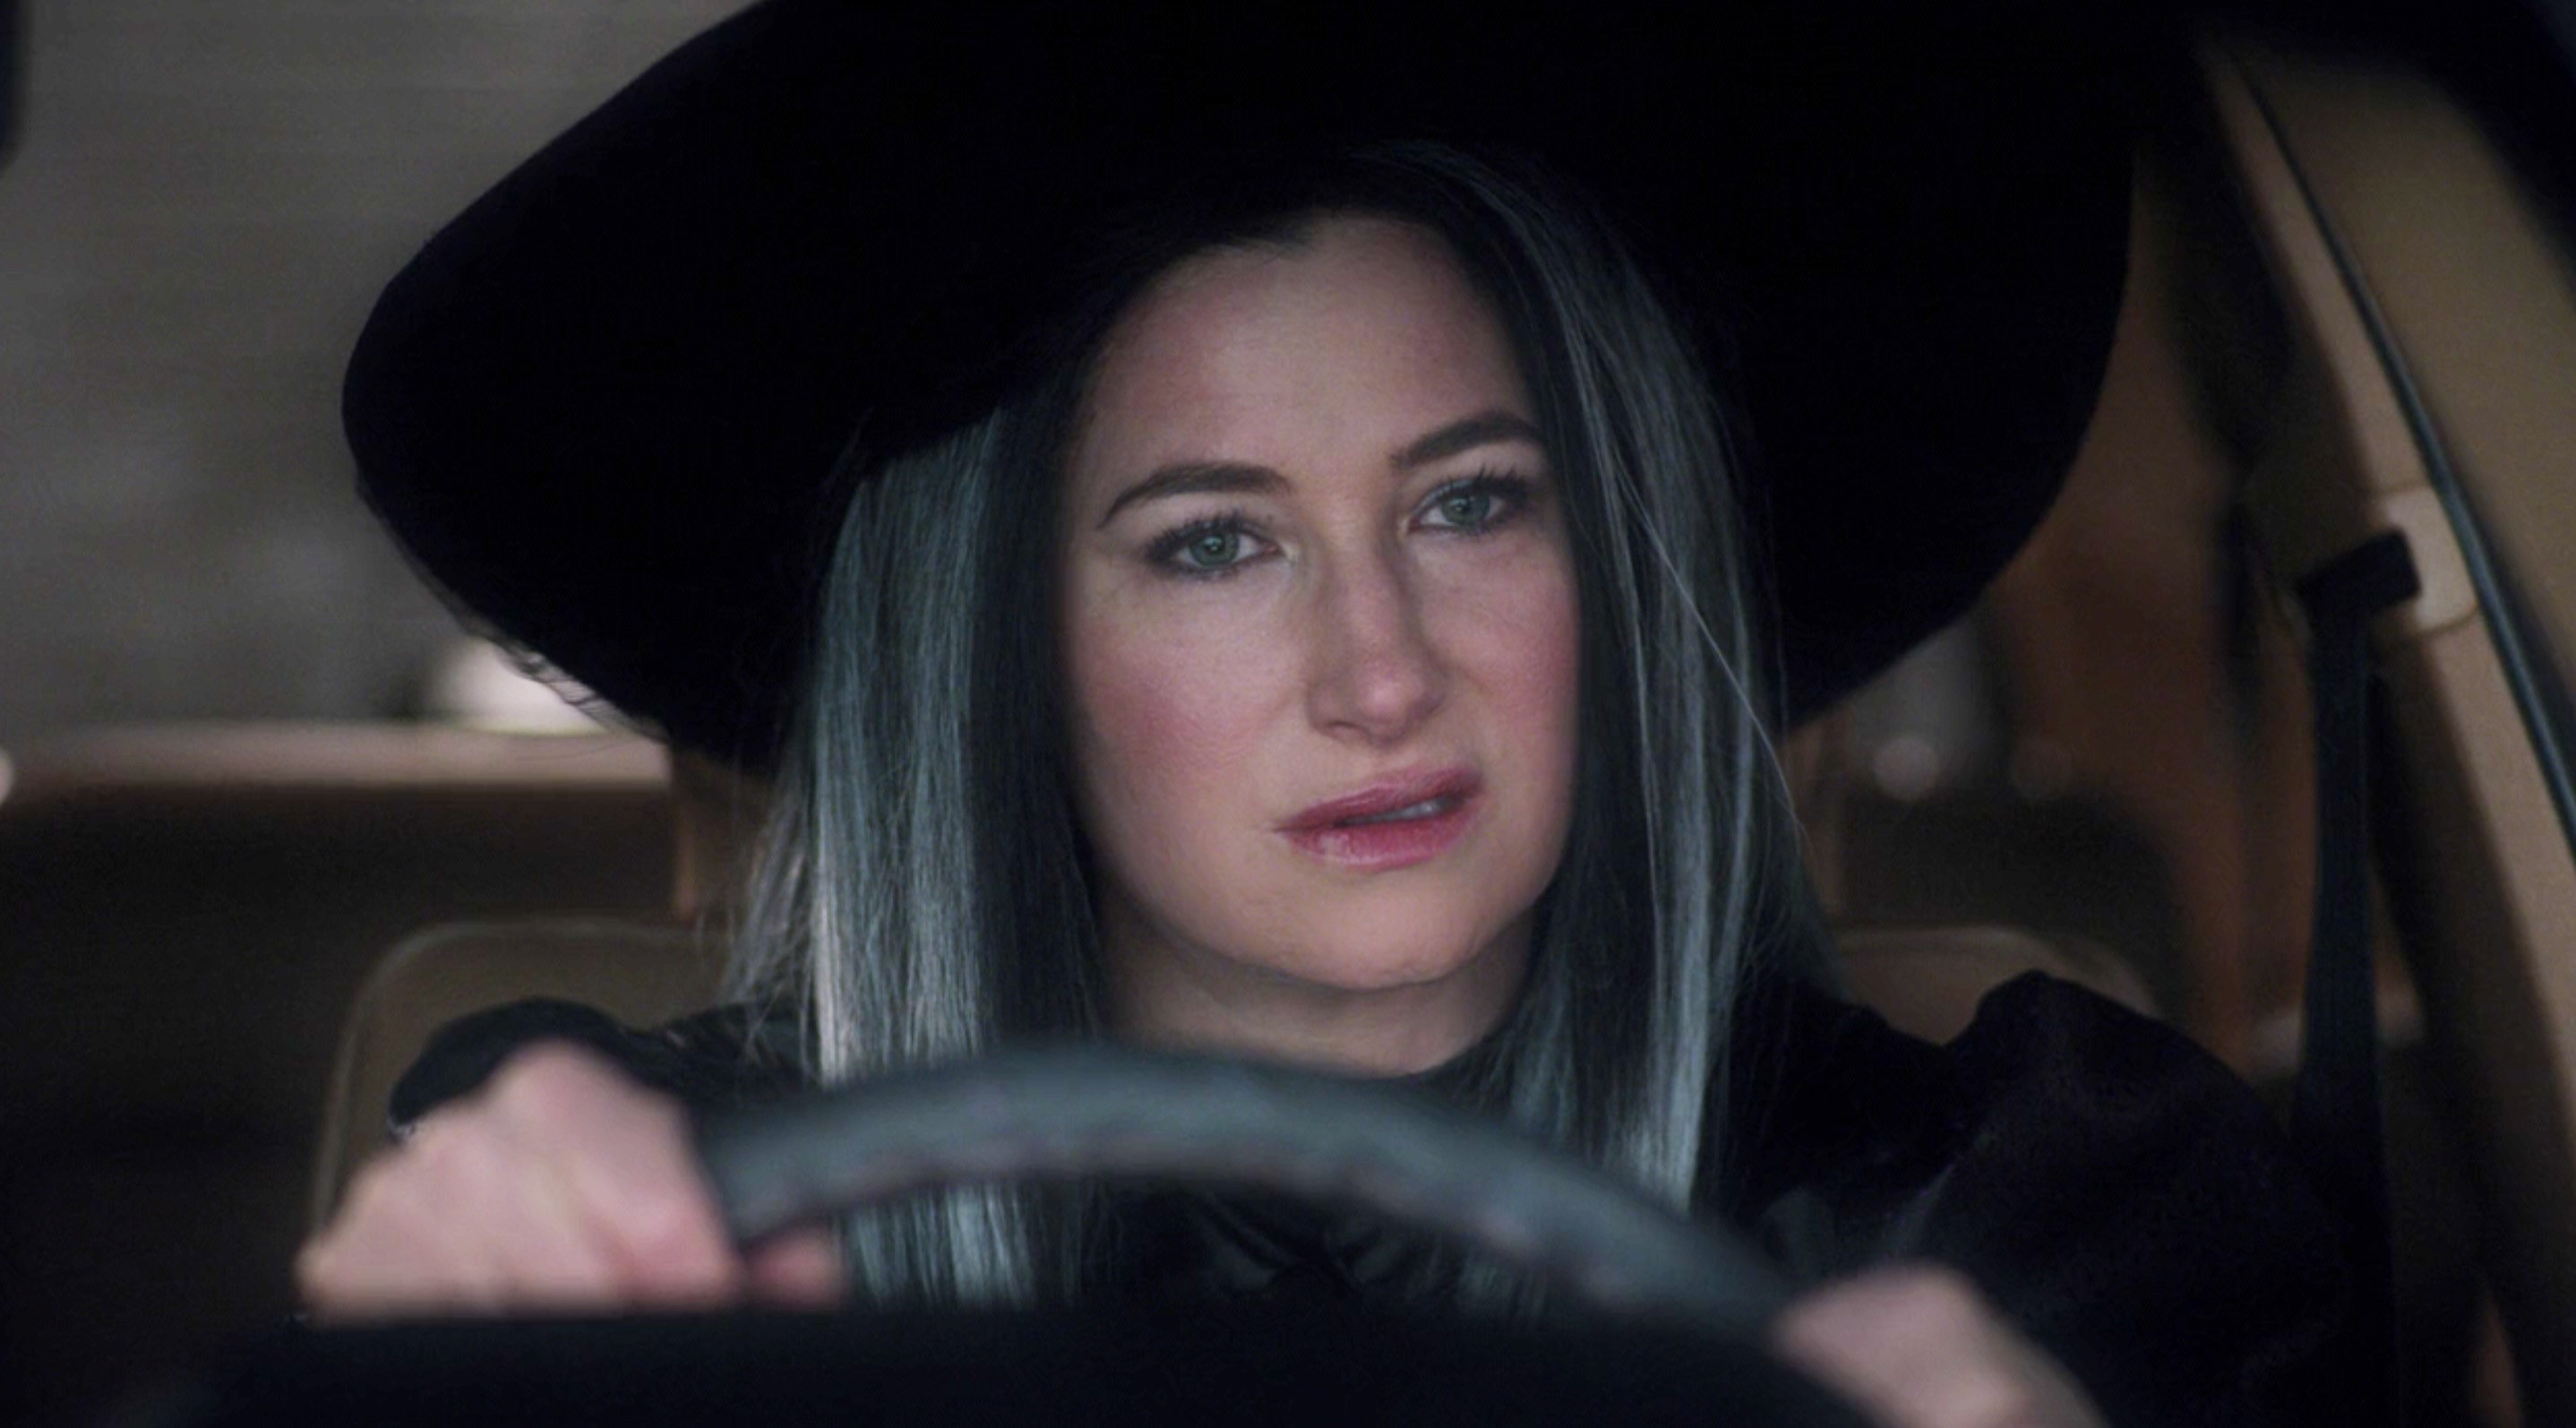 Agnes dressed as a witch as she sits behind the wheel of a car